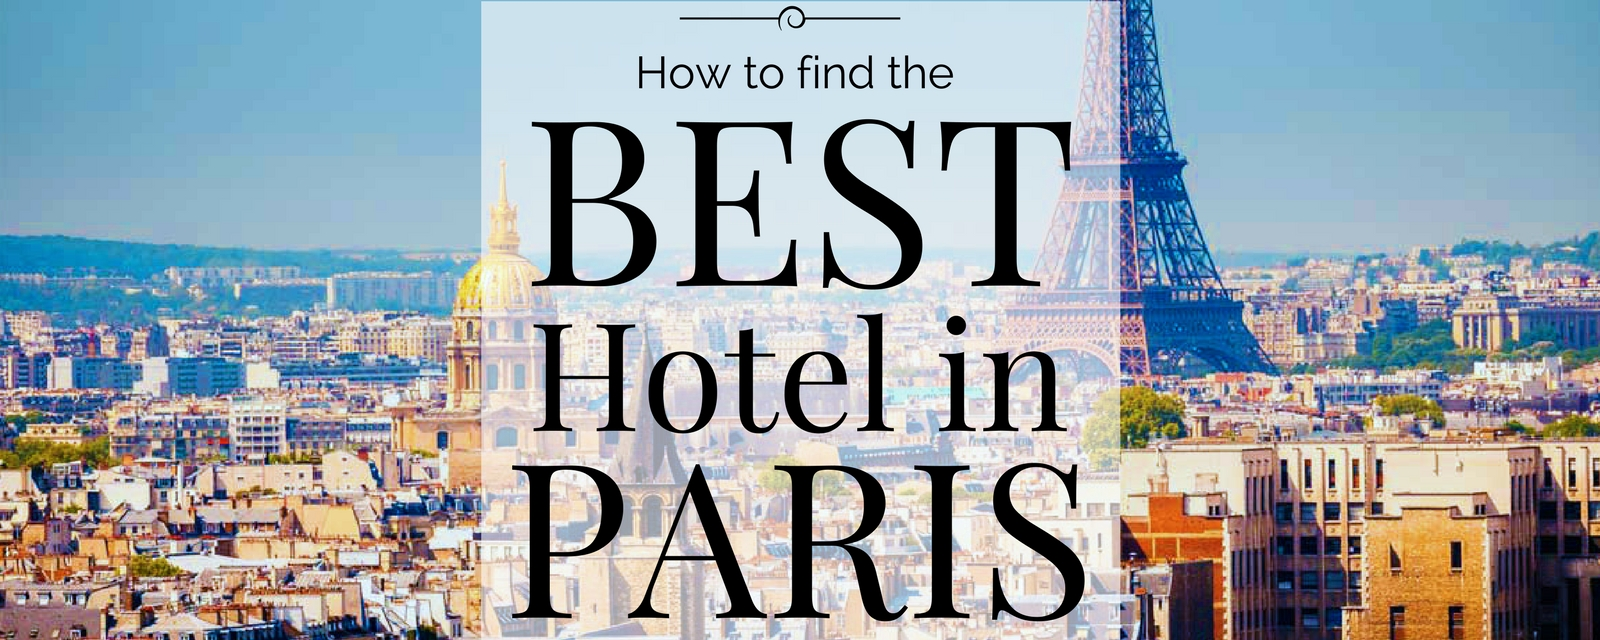 How To Find The Best Hotel In Paris Or Anywhere